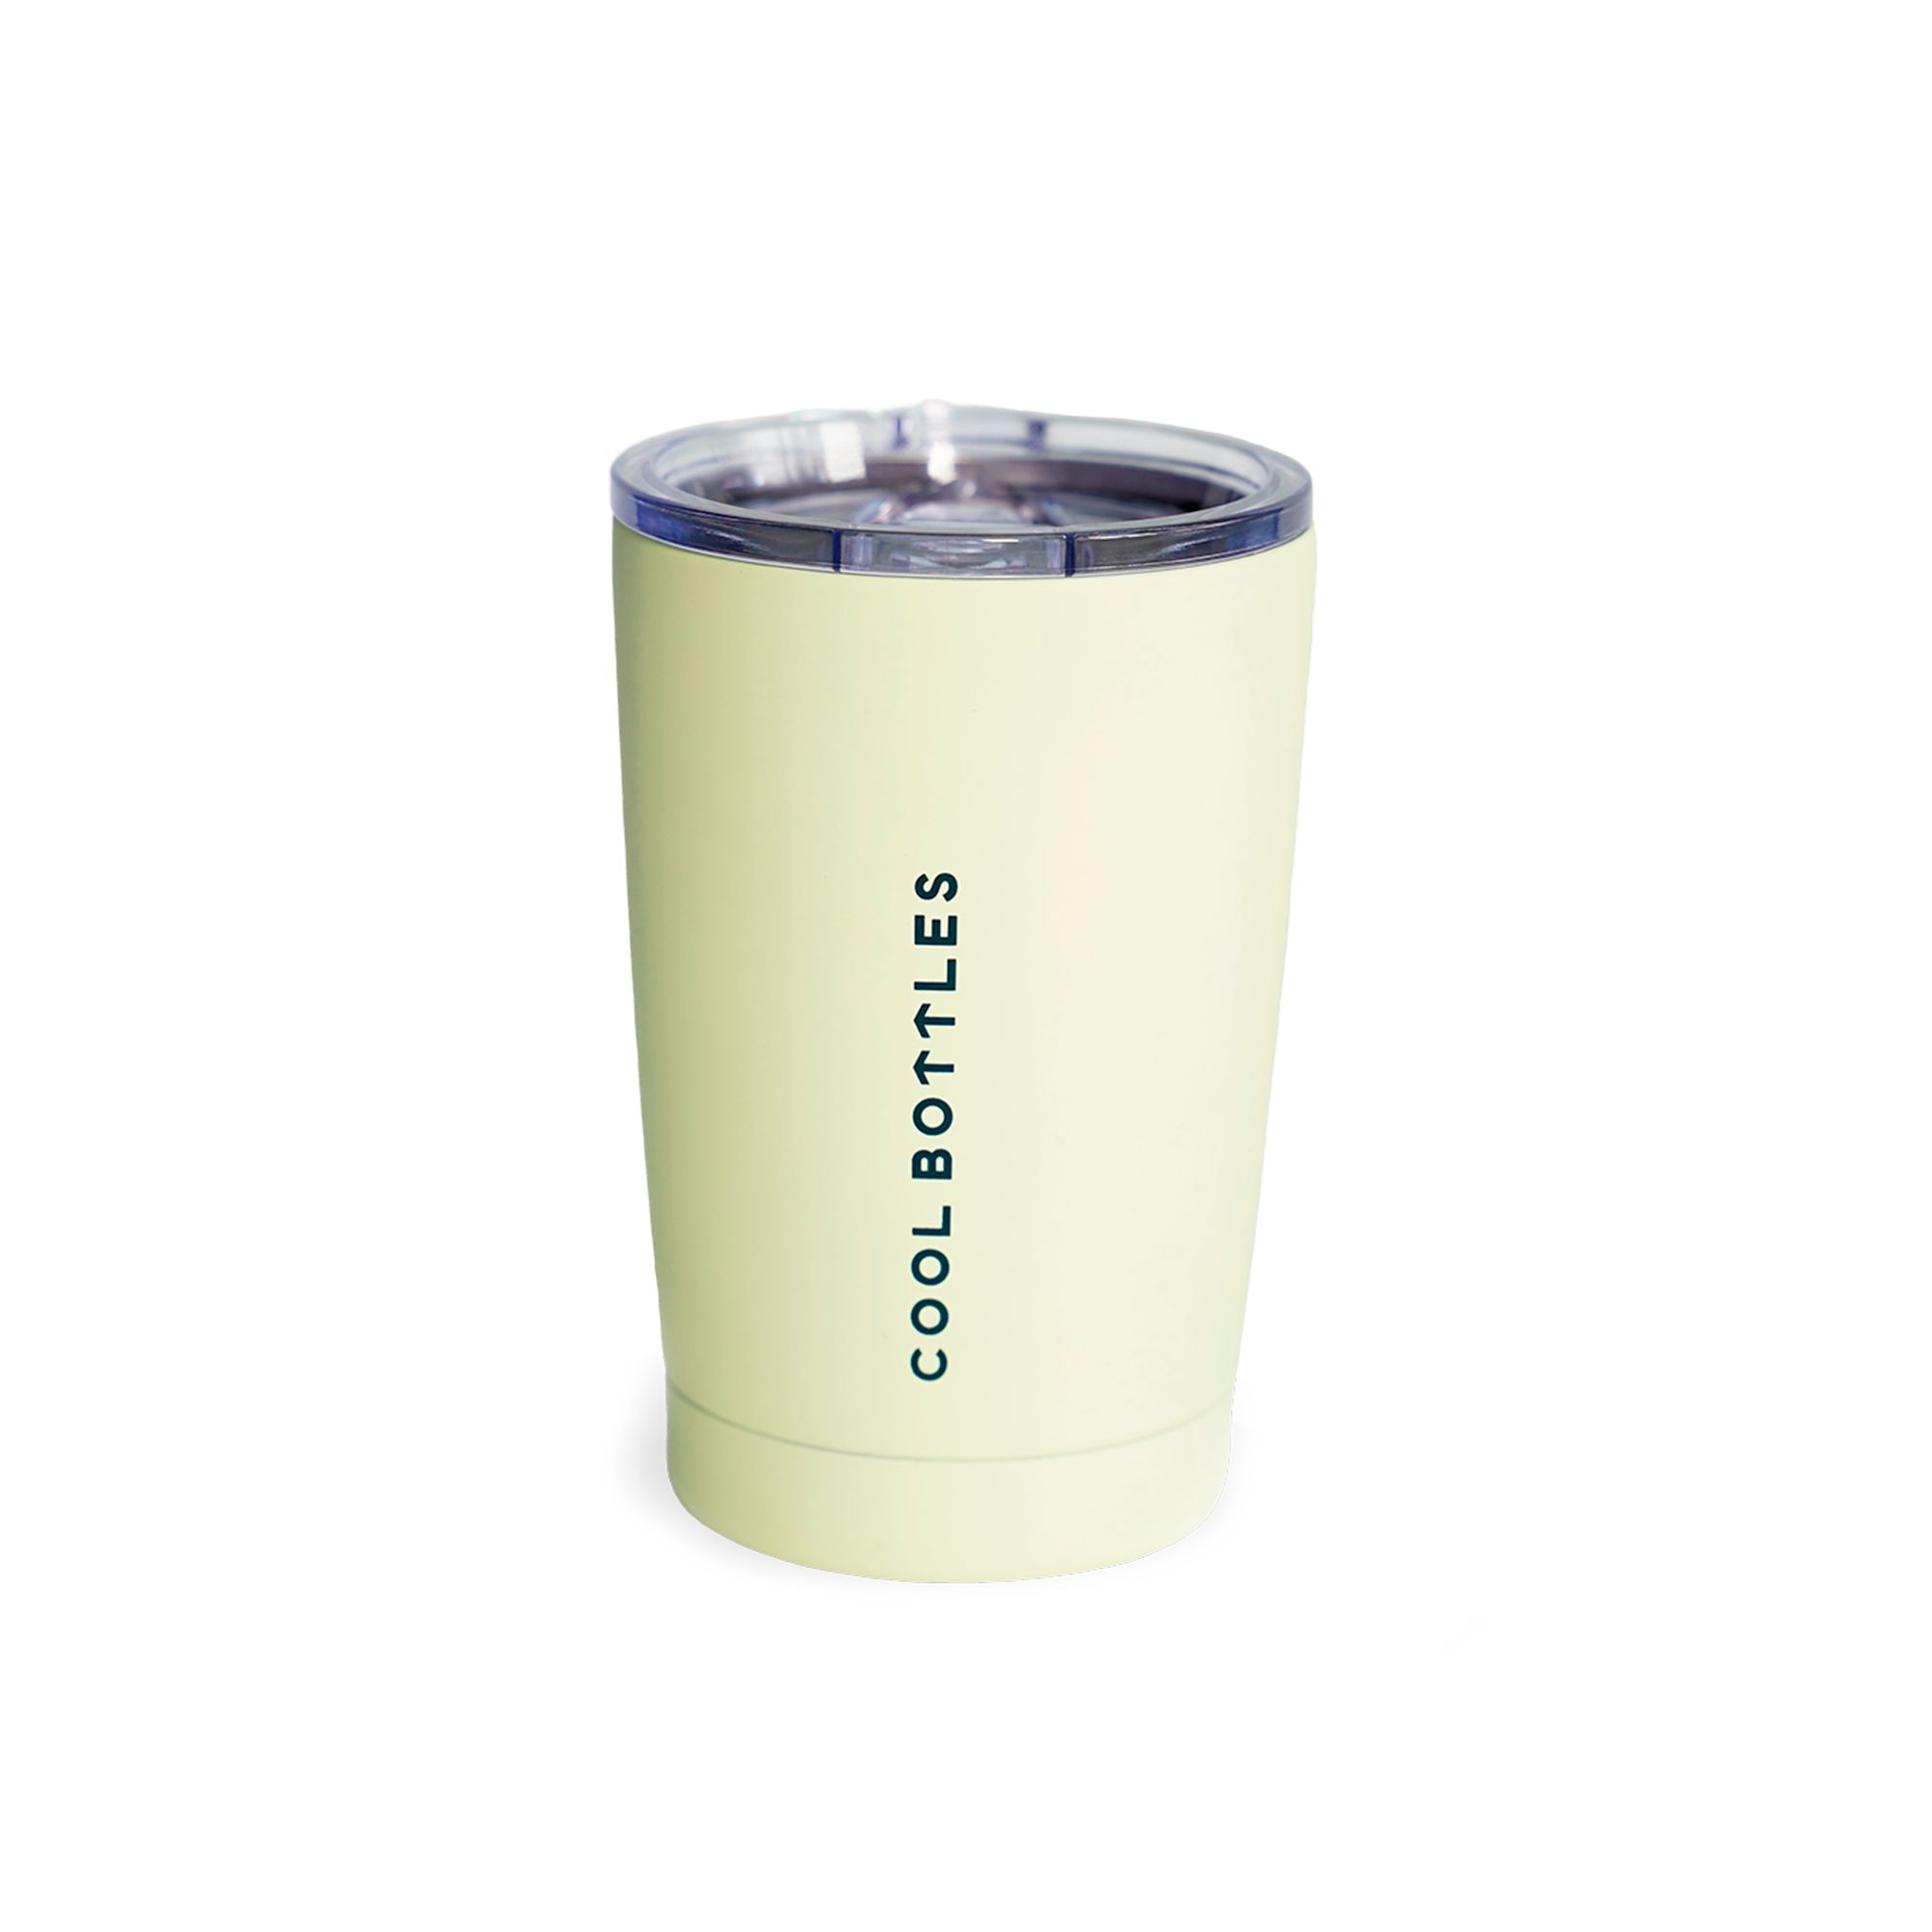 Vaso de acero inoxidable Pastel Green